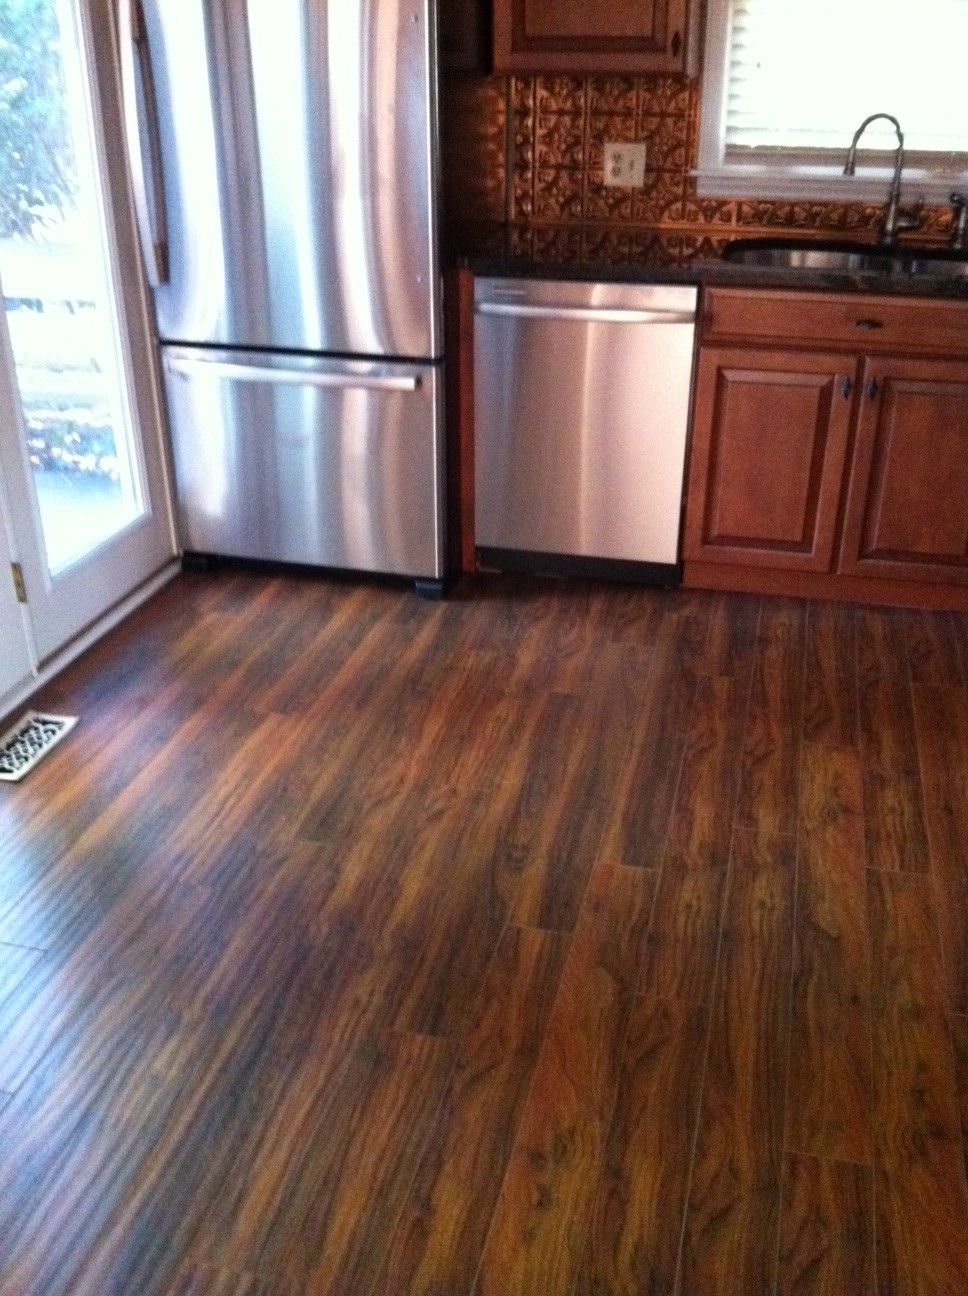 Fresco of hardwood floor vs laminate the pros and cons - Pros and cons of hardwood flooring ...